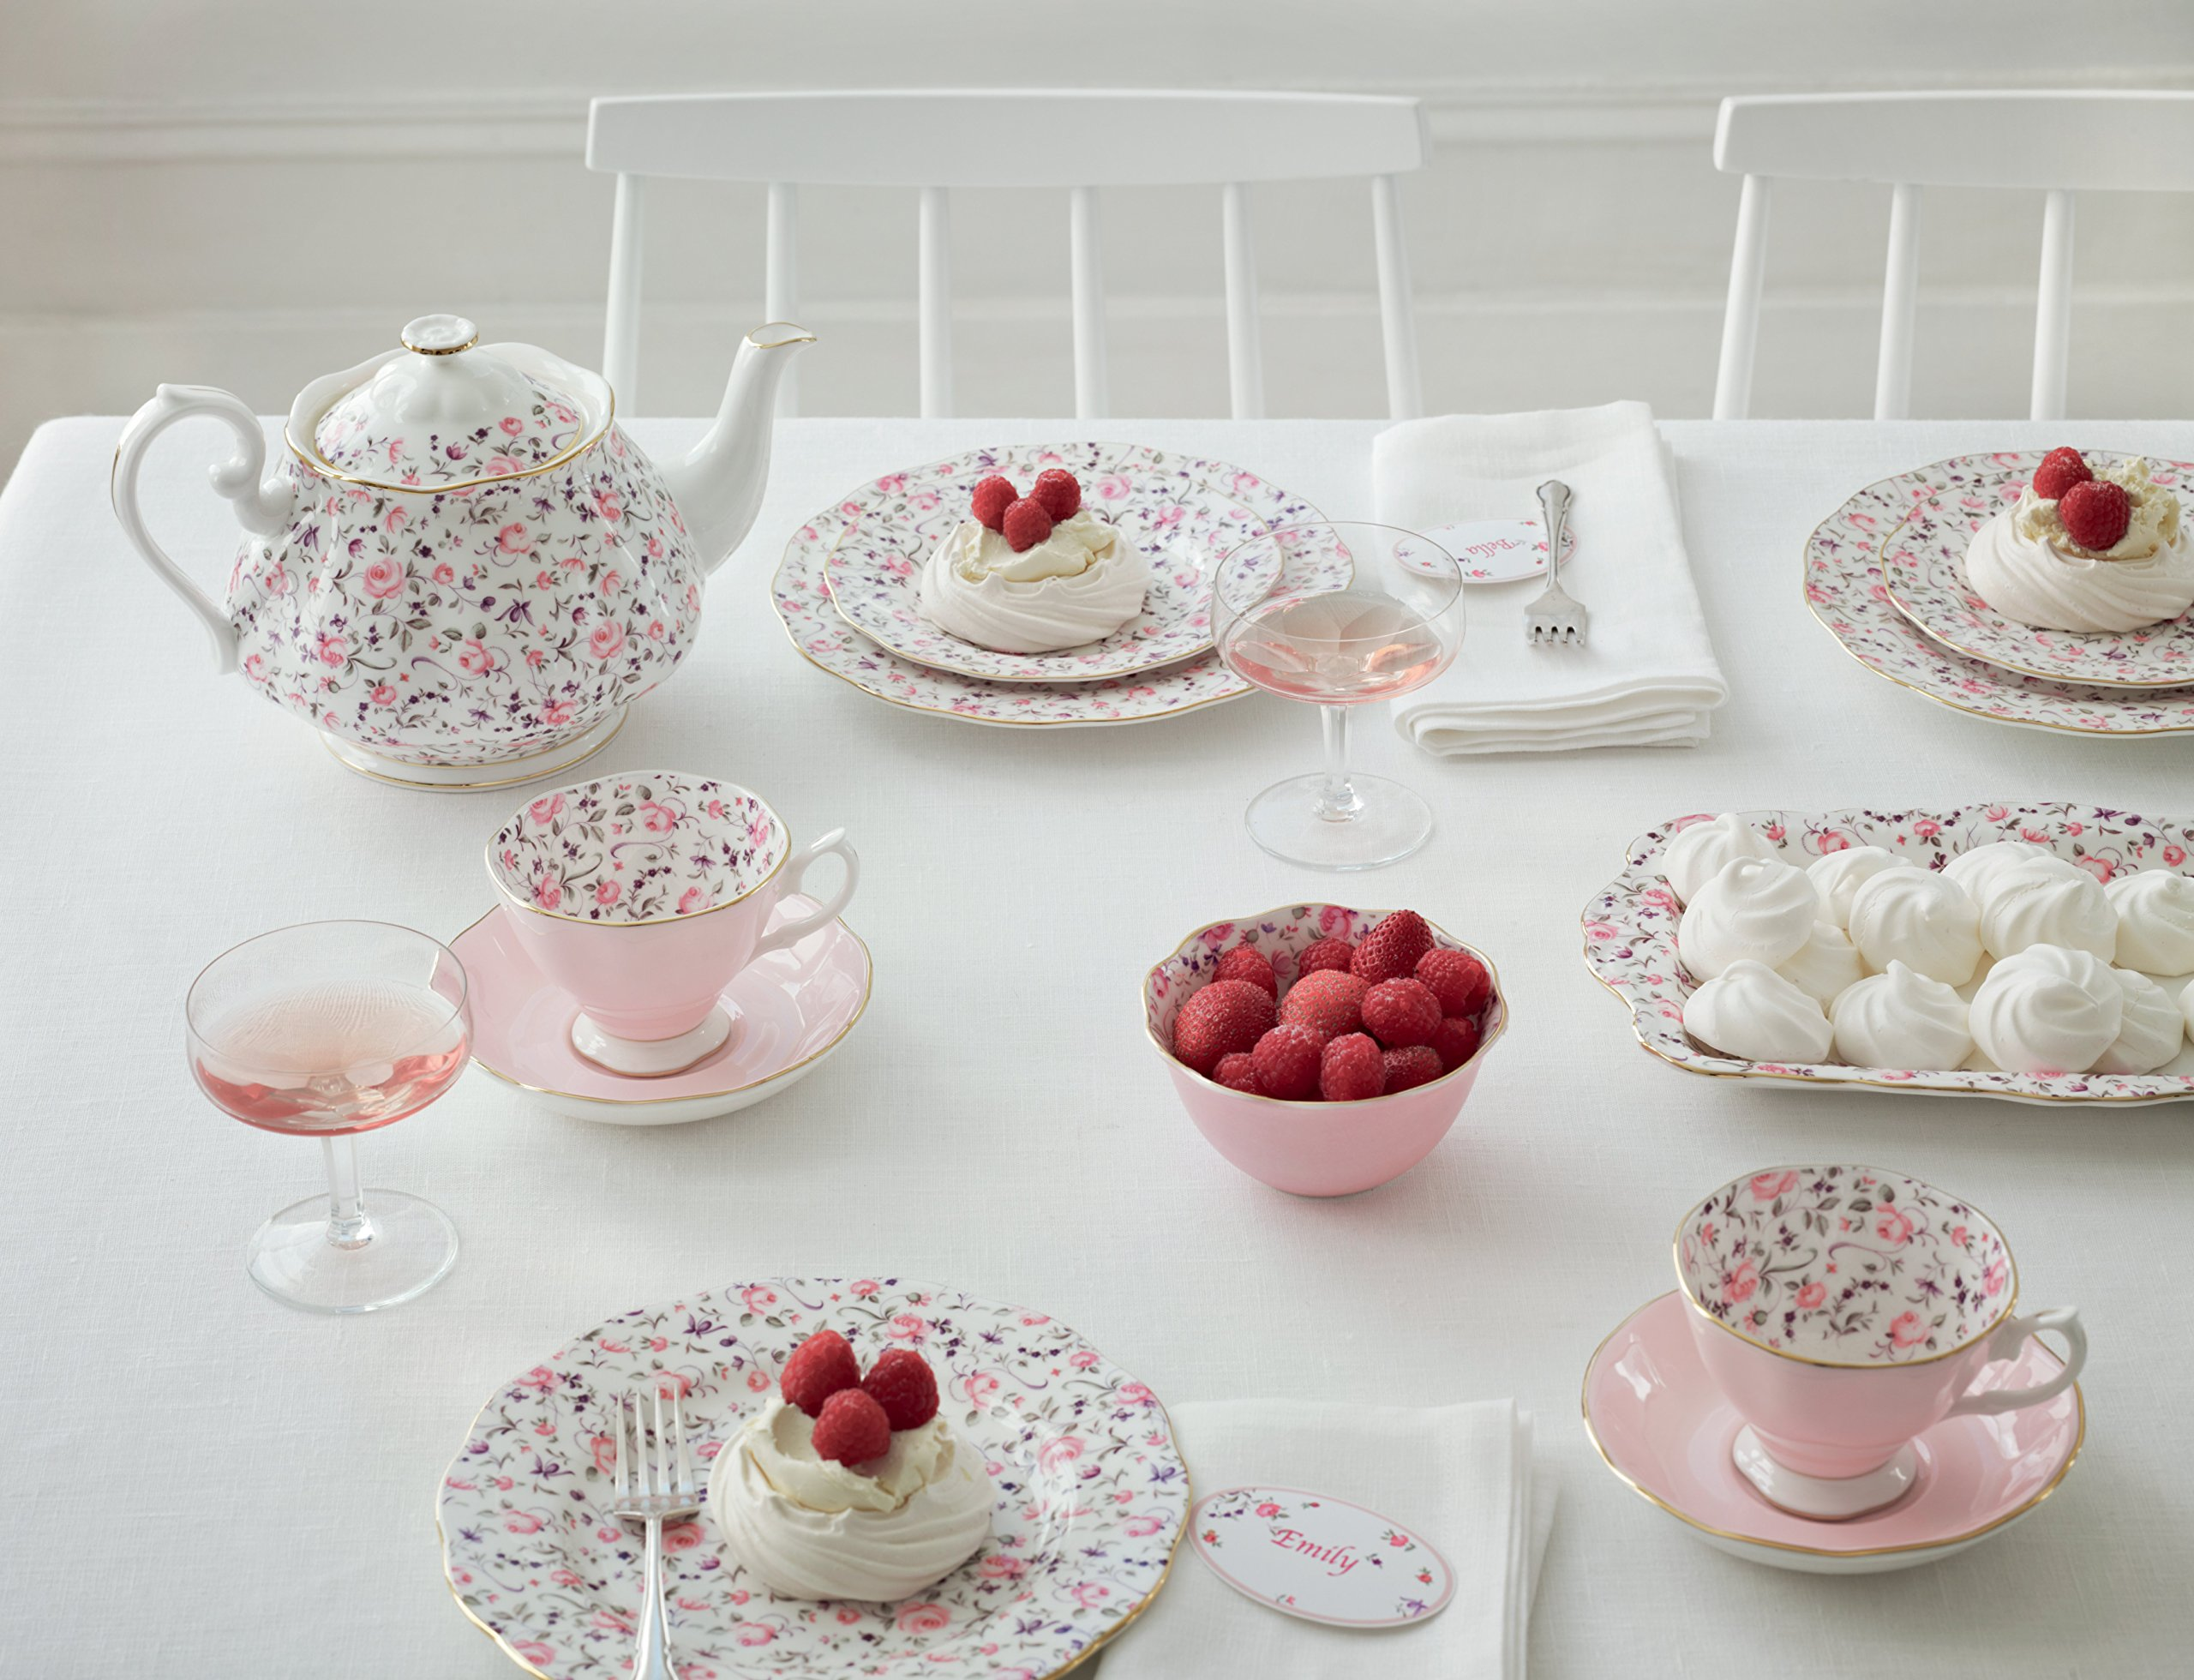 Royal Albert 8704025823 New Country Roses Rose Confetti Teaset, 3-Piece by Royal Albert (Image #5)